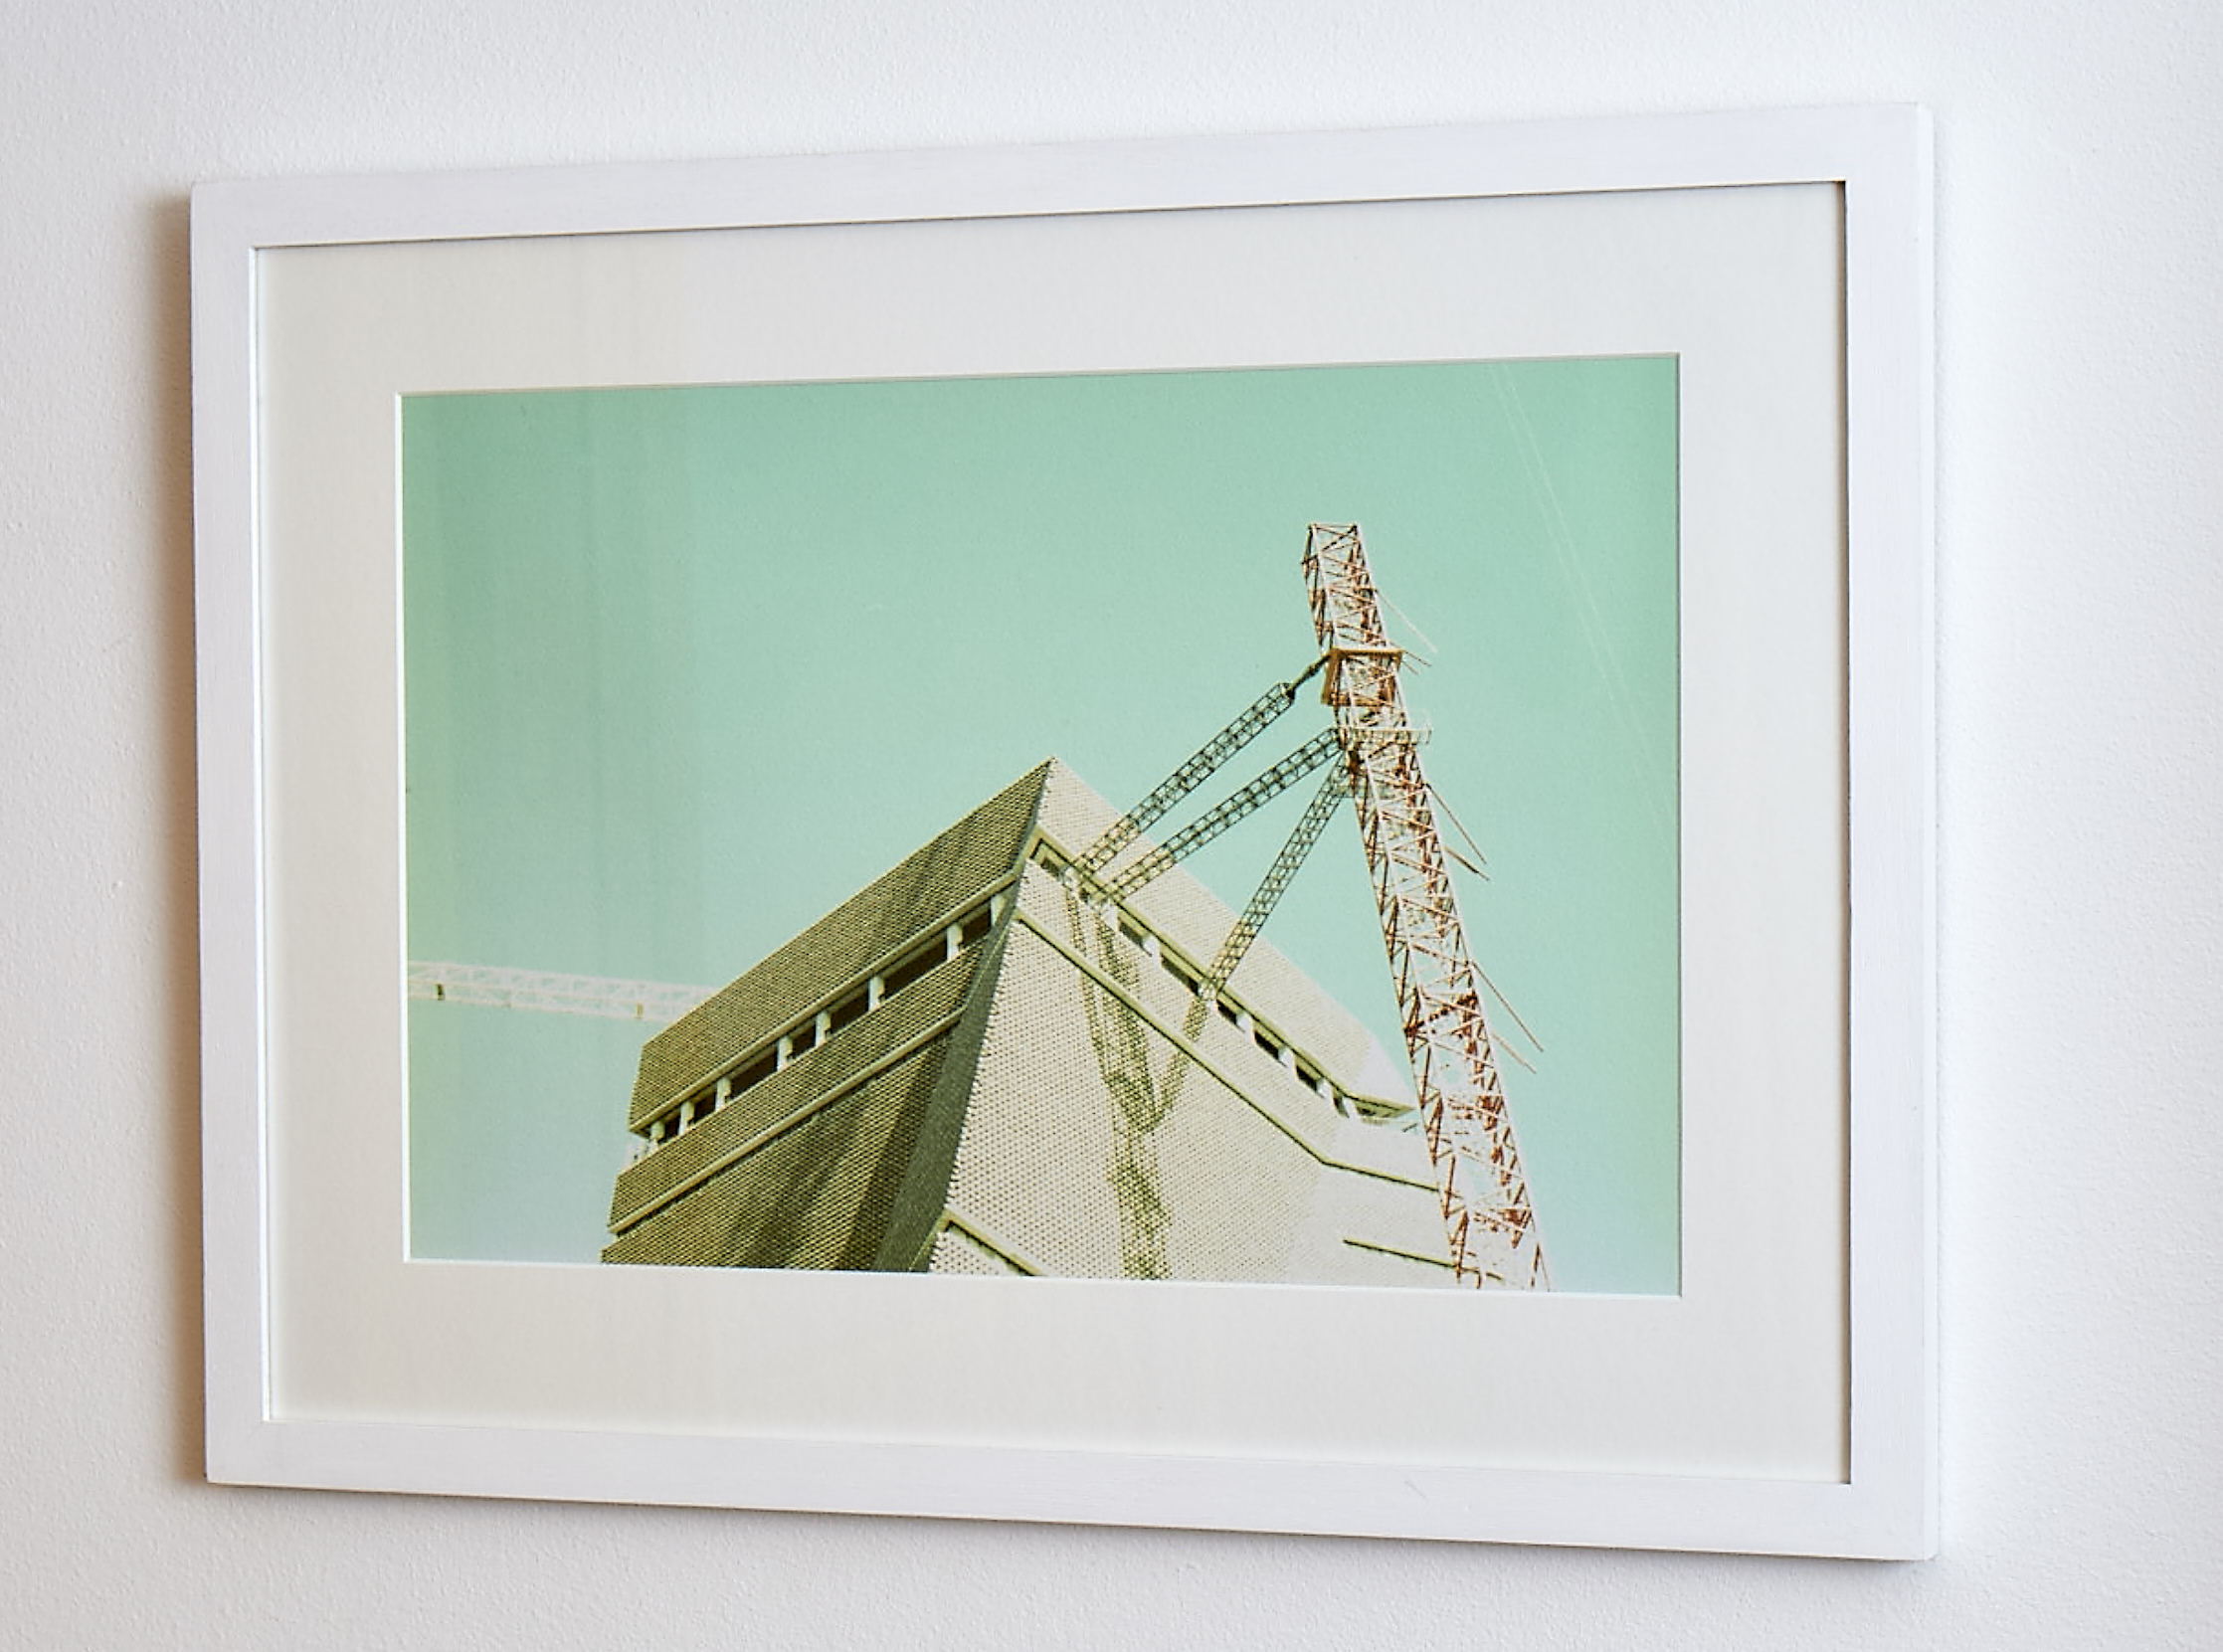 """Tate Addition   The simplicity of the white frame sets off the unique hues of this cross-processed print. Shot whilst the new wing of the Tate Modern was being erected, it is unlikely to ever be reenacted!   Cross-processed image on Textured paper.    Frame Size approx. 22x 16.5""""    COST £69.00"""